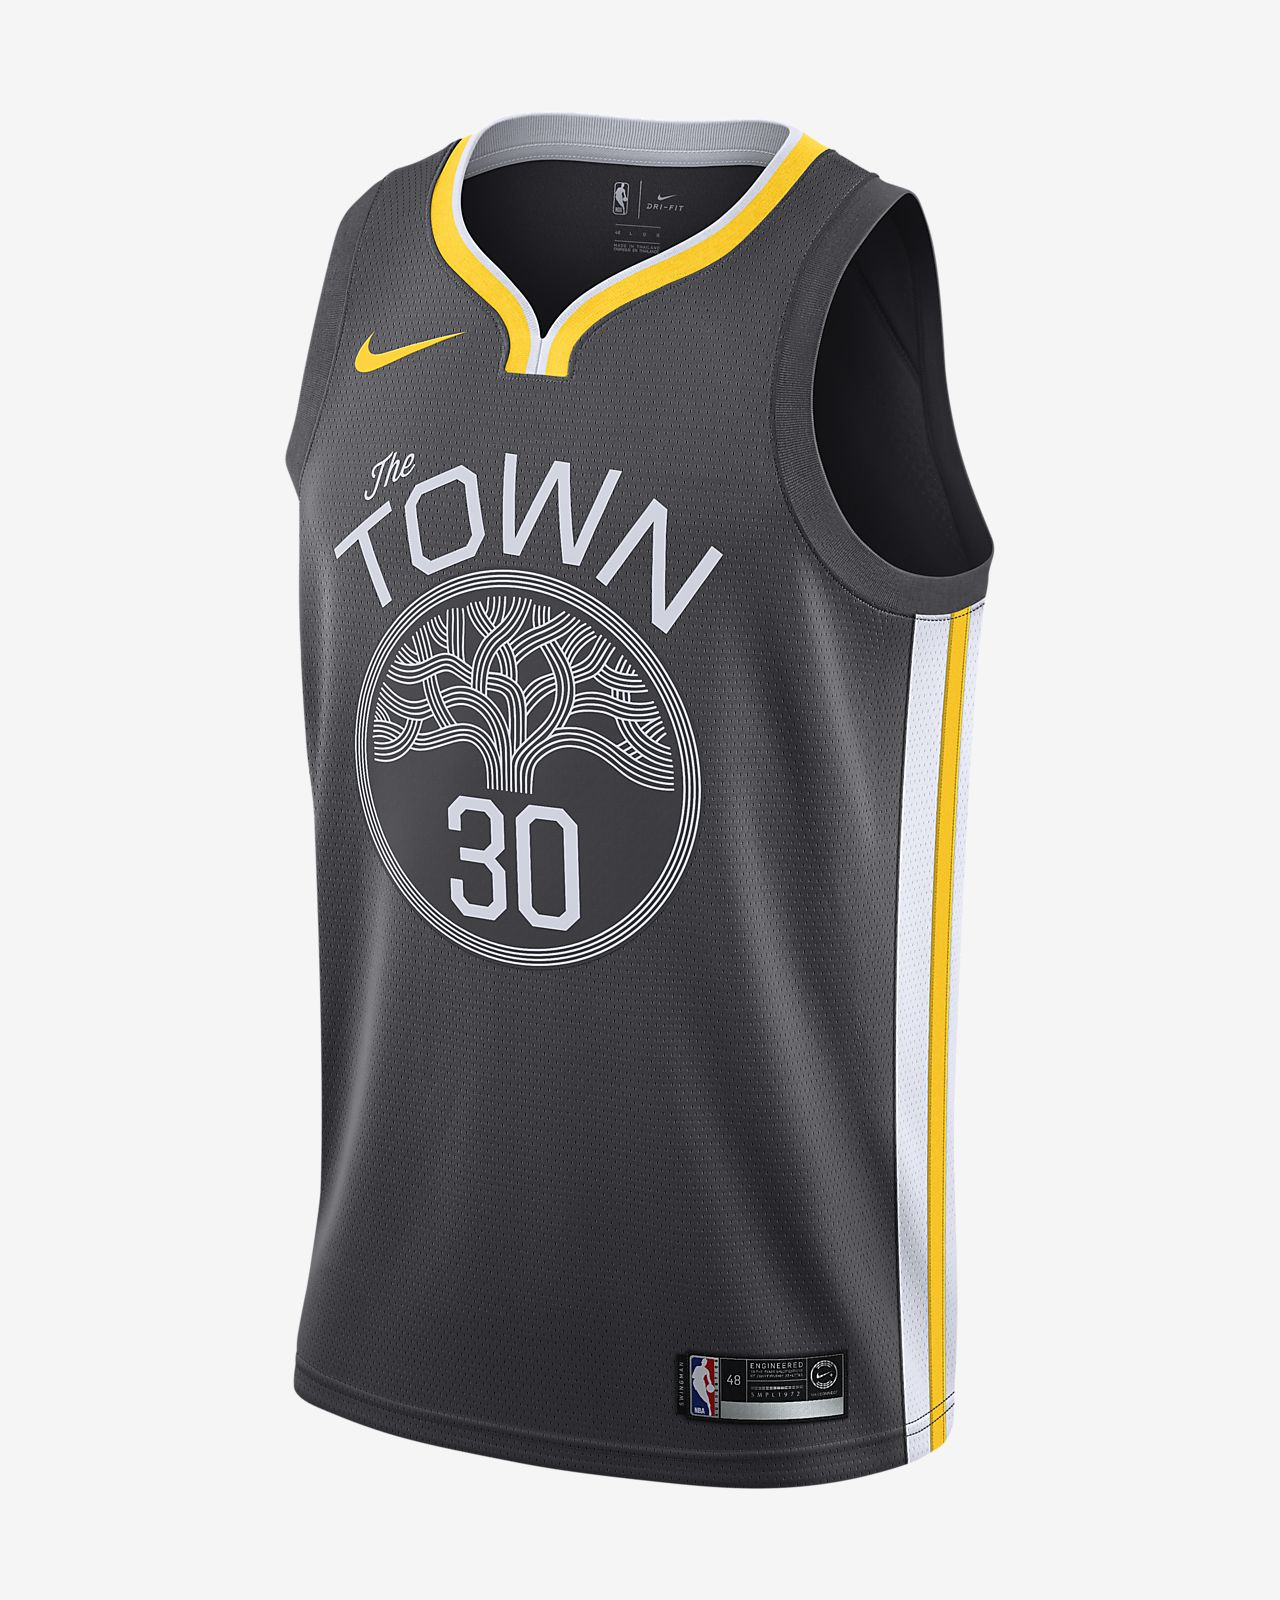 481c157e4 Men s Nike NBA Connected Jersey. Stephen Curry Statement Edition Swingman (Golden  State Warriors)